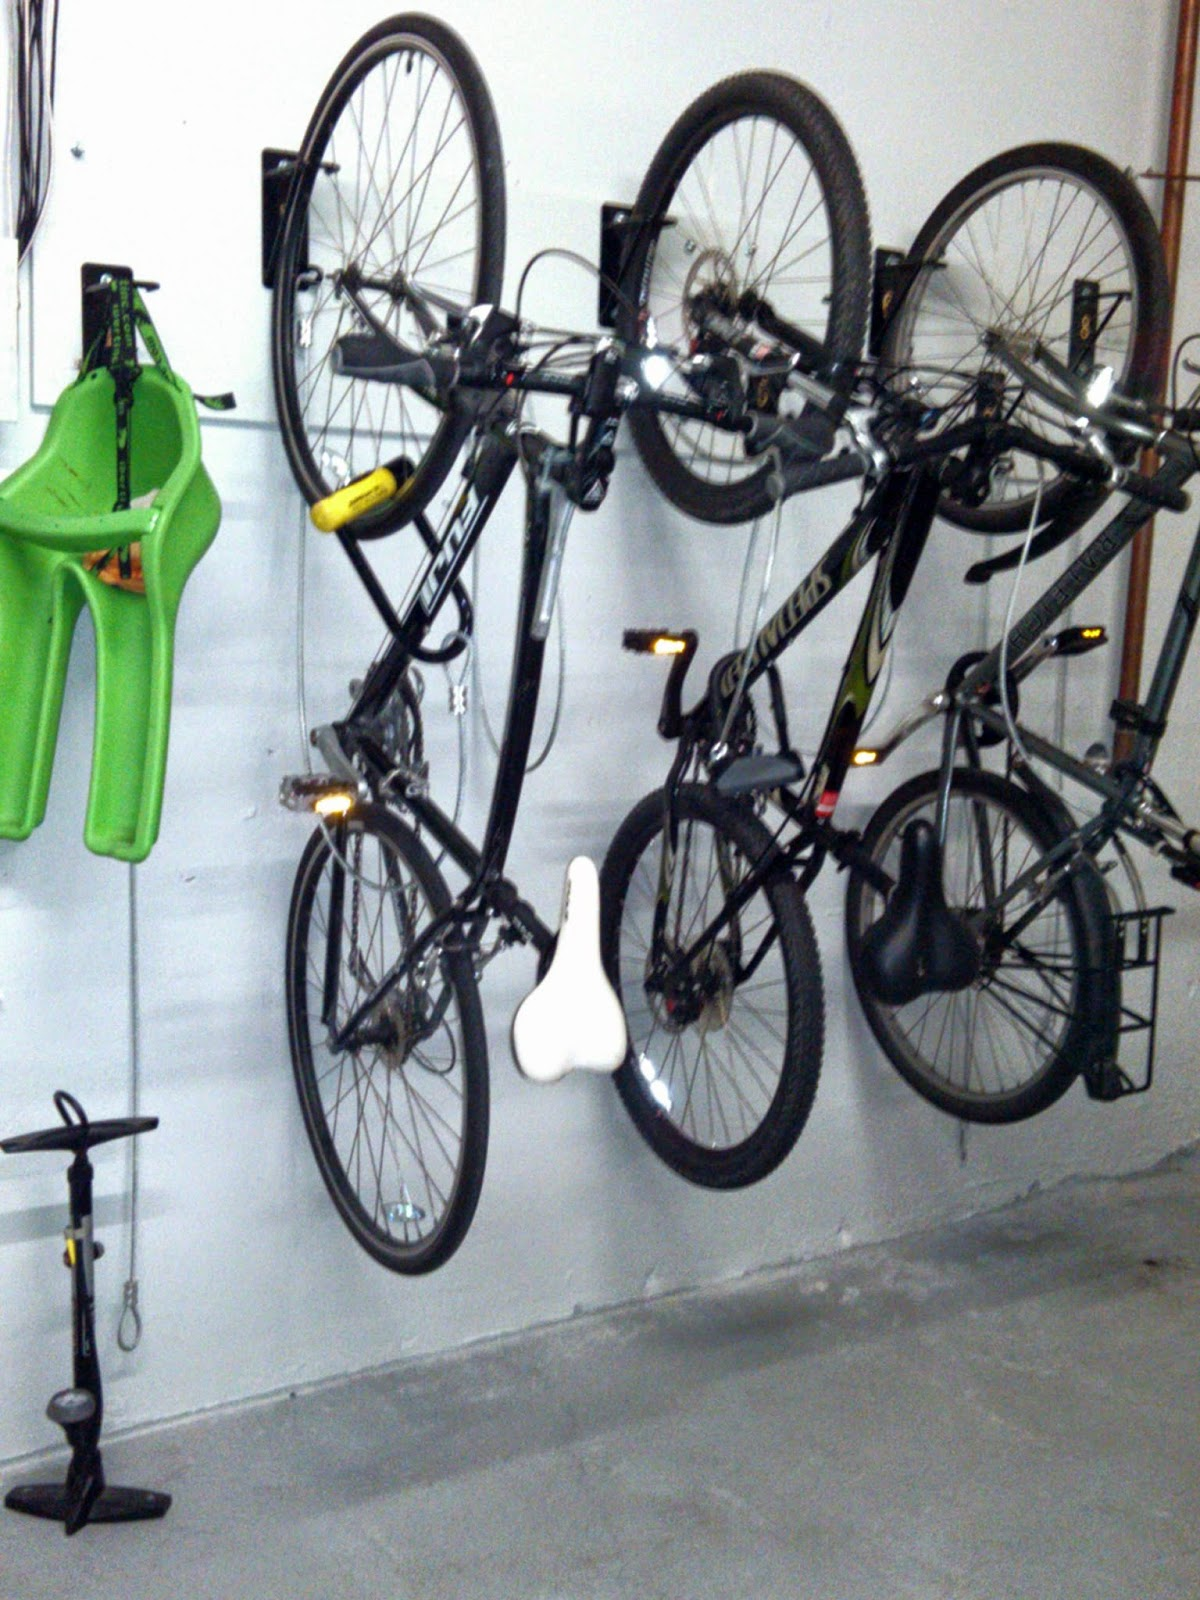 Wall Mount Bike Racks Chicago Il Space Efficient Secure Bike